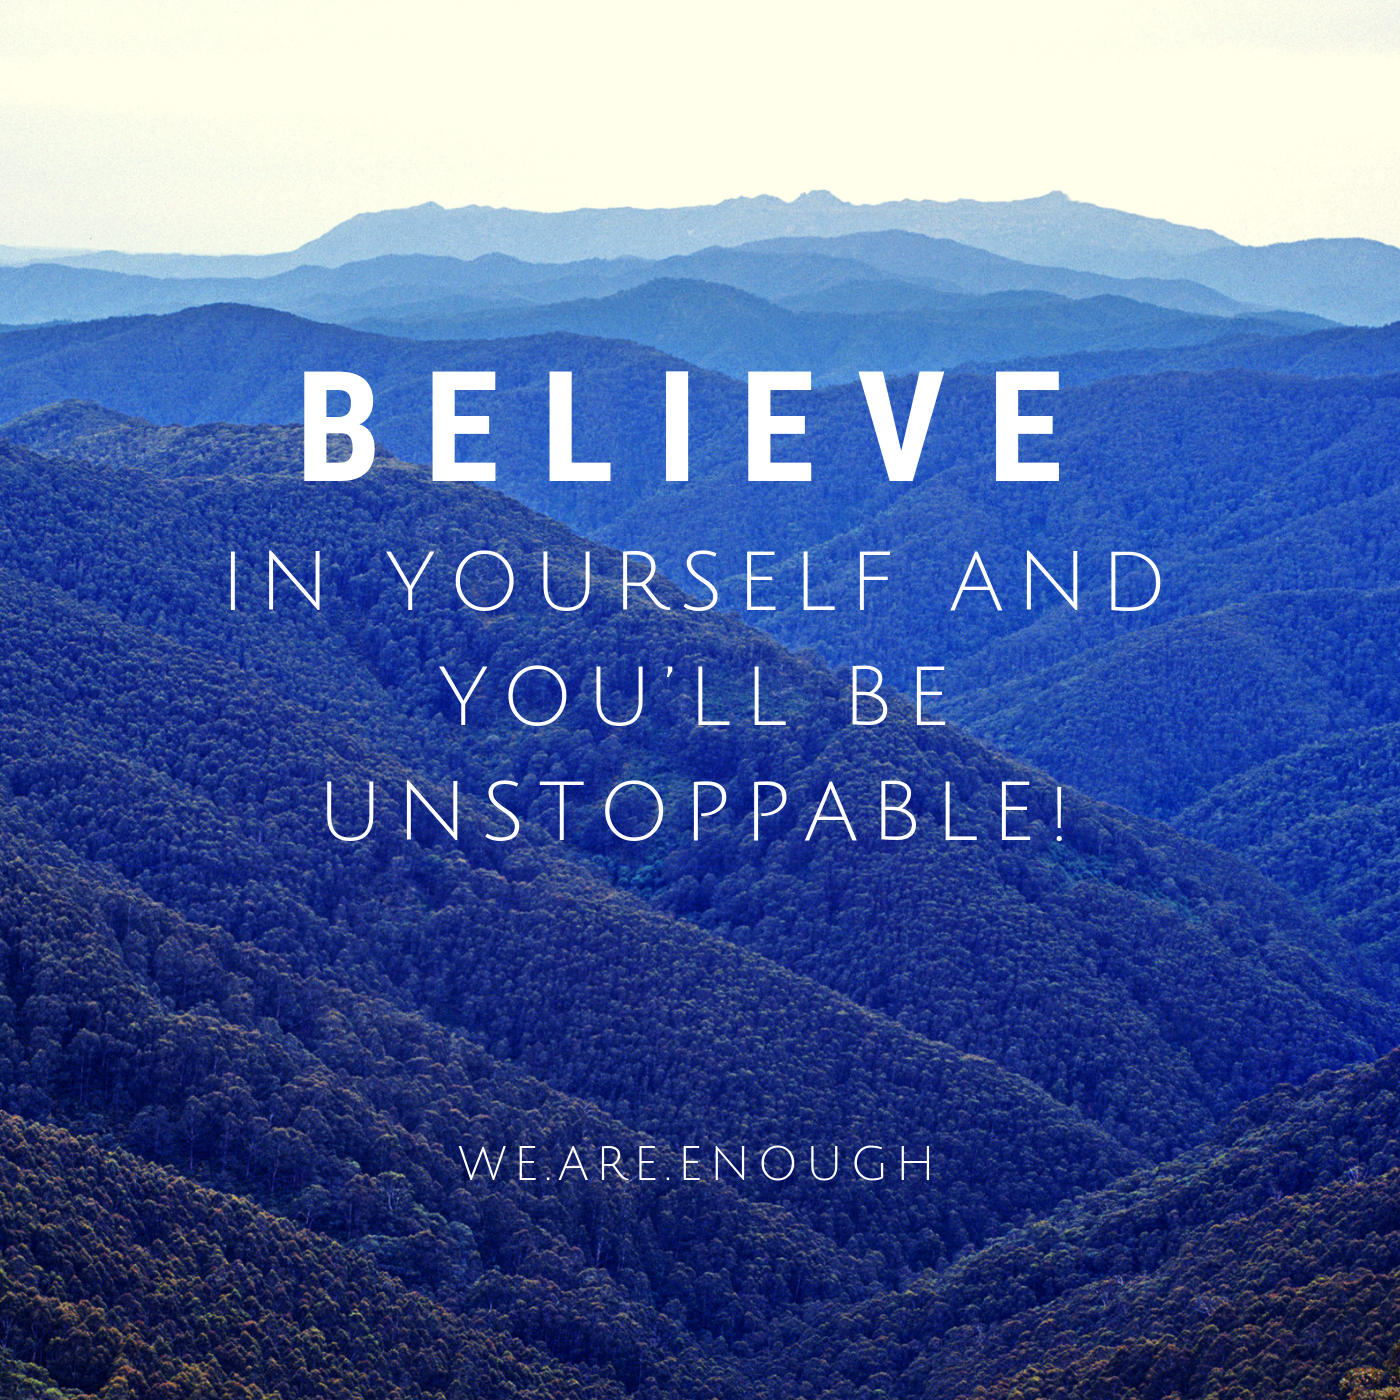 It all starts when you believe in yourself… - We are a group of women dedicated to making that happen and helping you on your path to true self love and spreading that to others. One of our promises here at WAE is to surround you with raw, real, and truthful words to help you better yourself and be able to spread that truth to others throughout the world. Women need other women to have their backs, build them up and not push them down. We will be here for you.